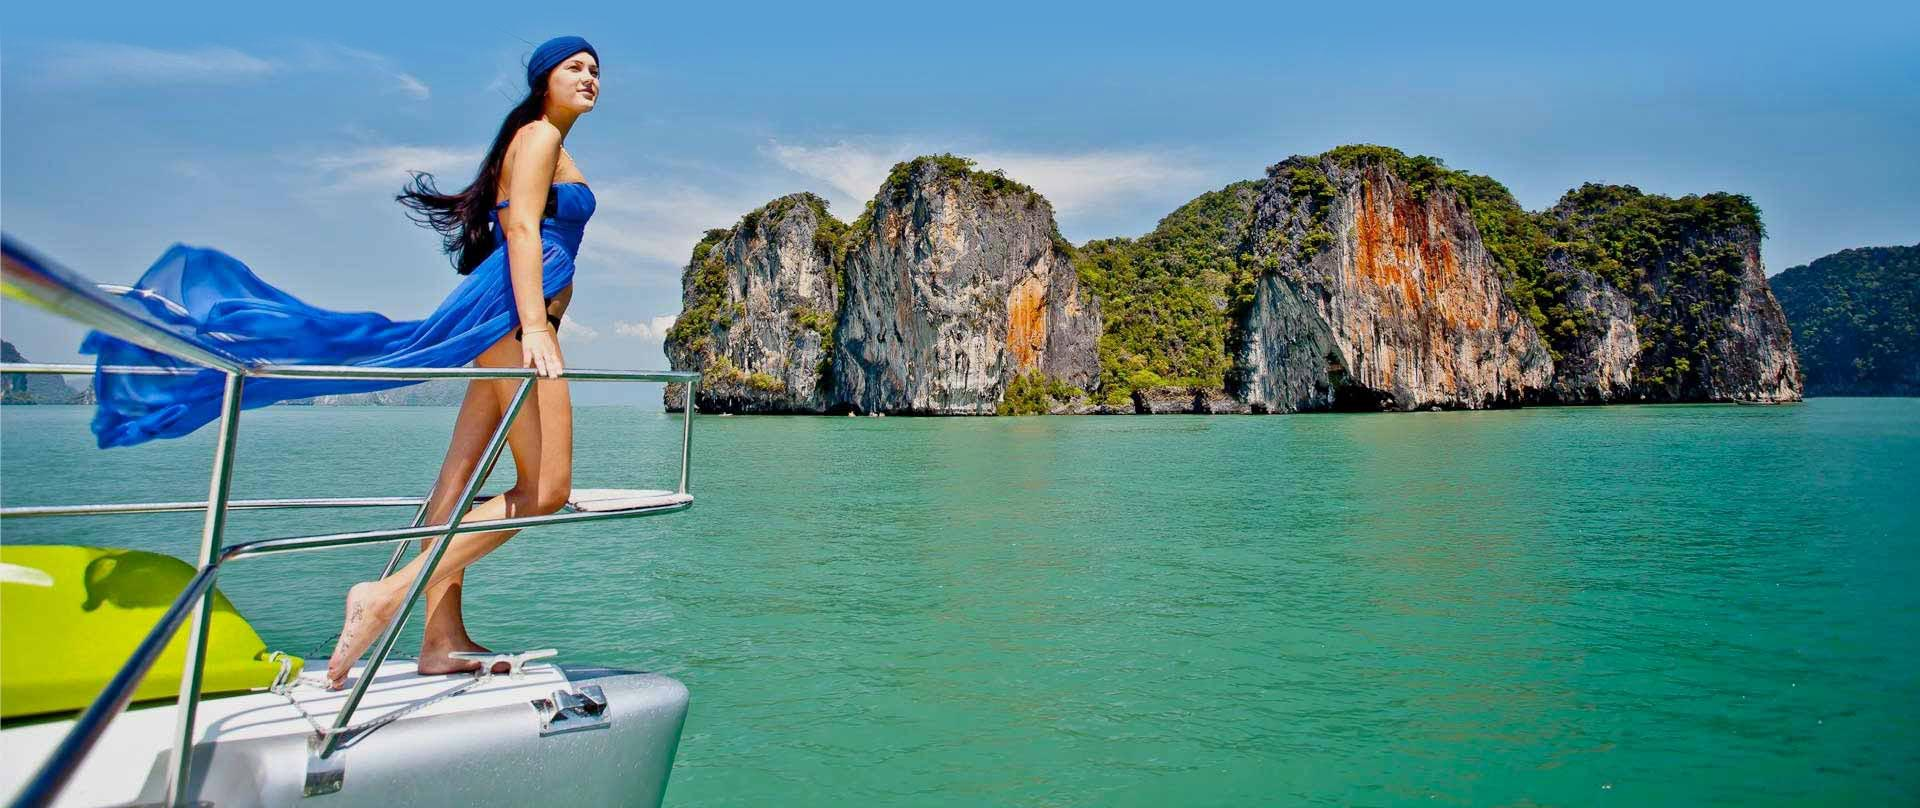 epic yacht charters titanic moment with a beautiful girl standing on the prow of our motor yacht - epic yacht charters phuket